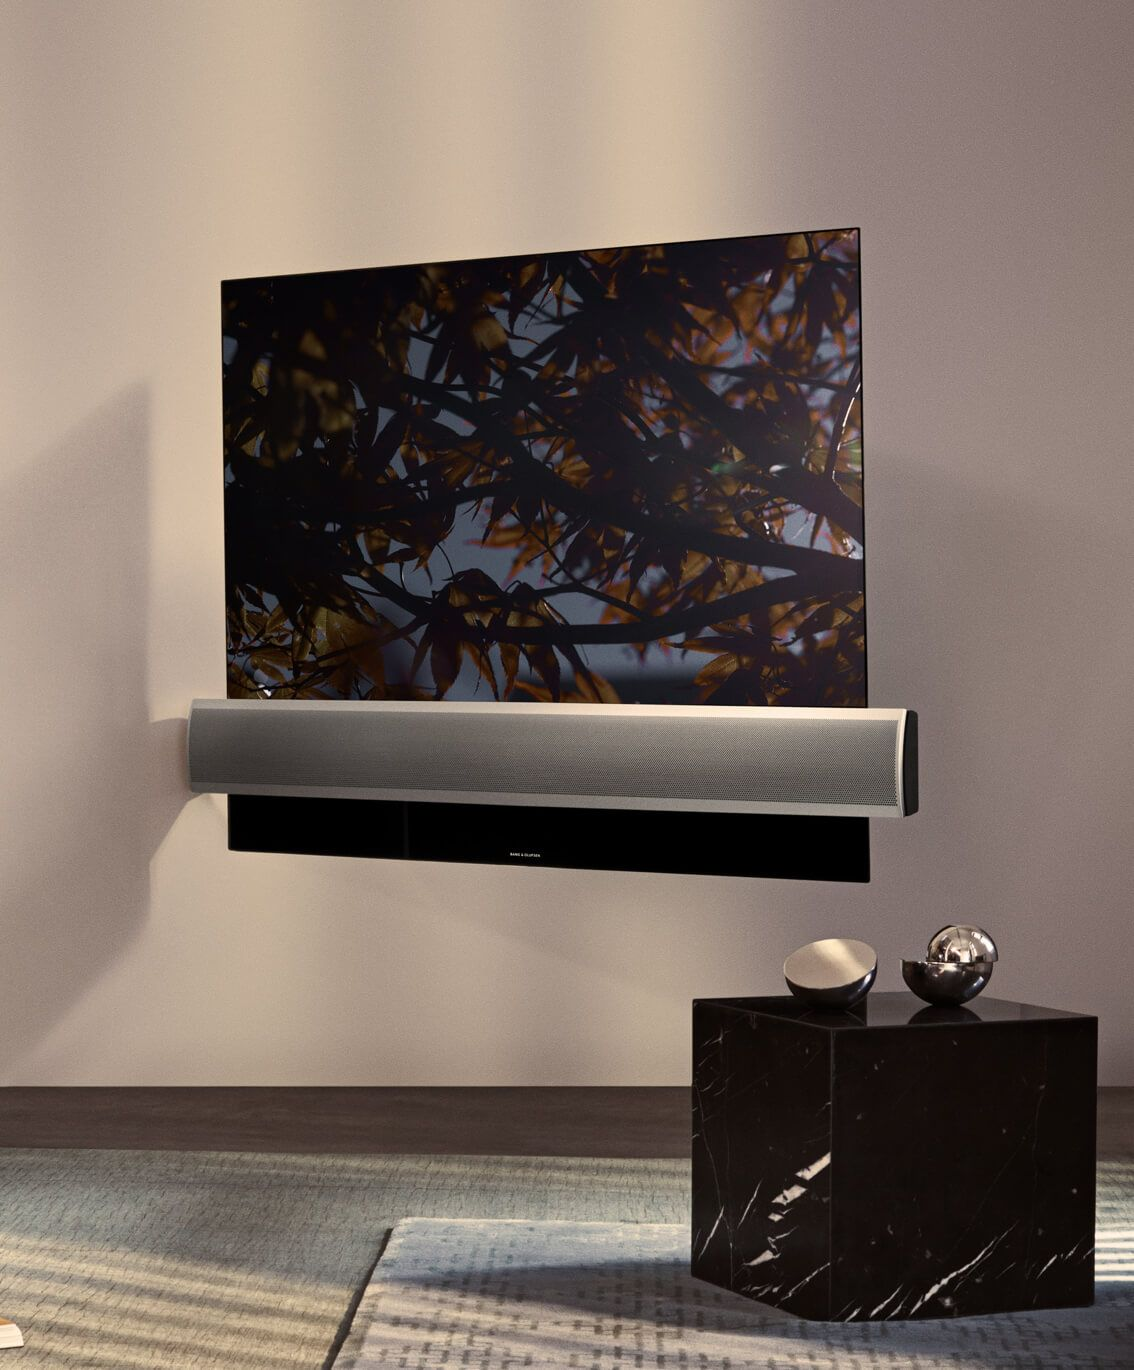 BeoVision Eclipse - 4K HDR OLED and the world's best TV sound